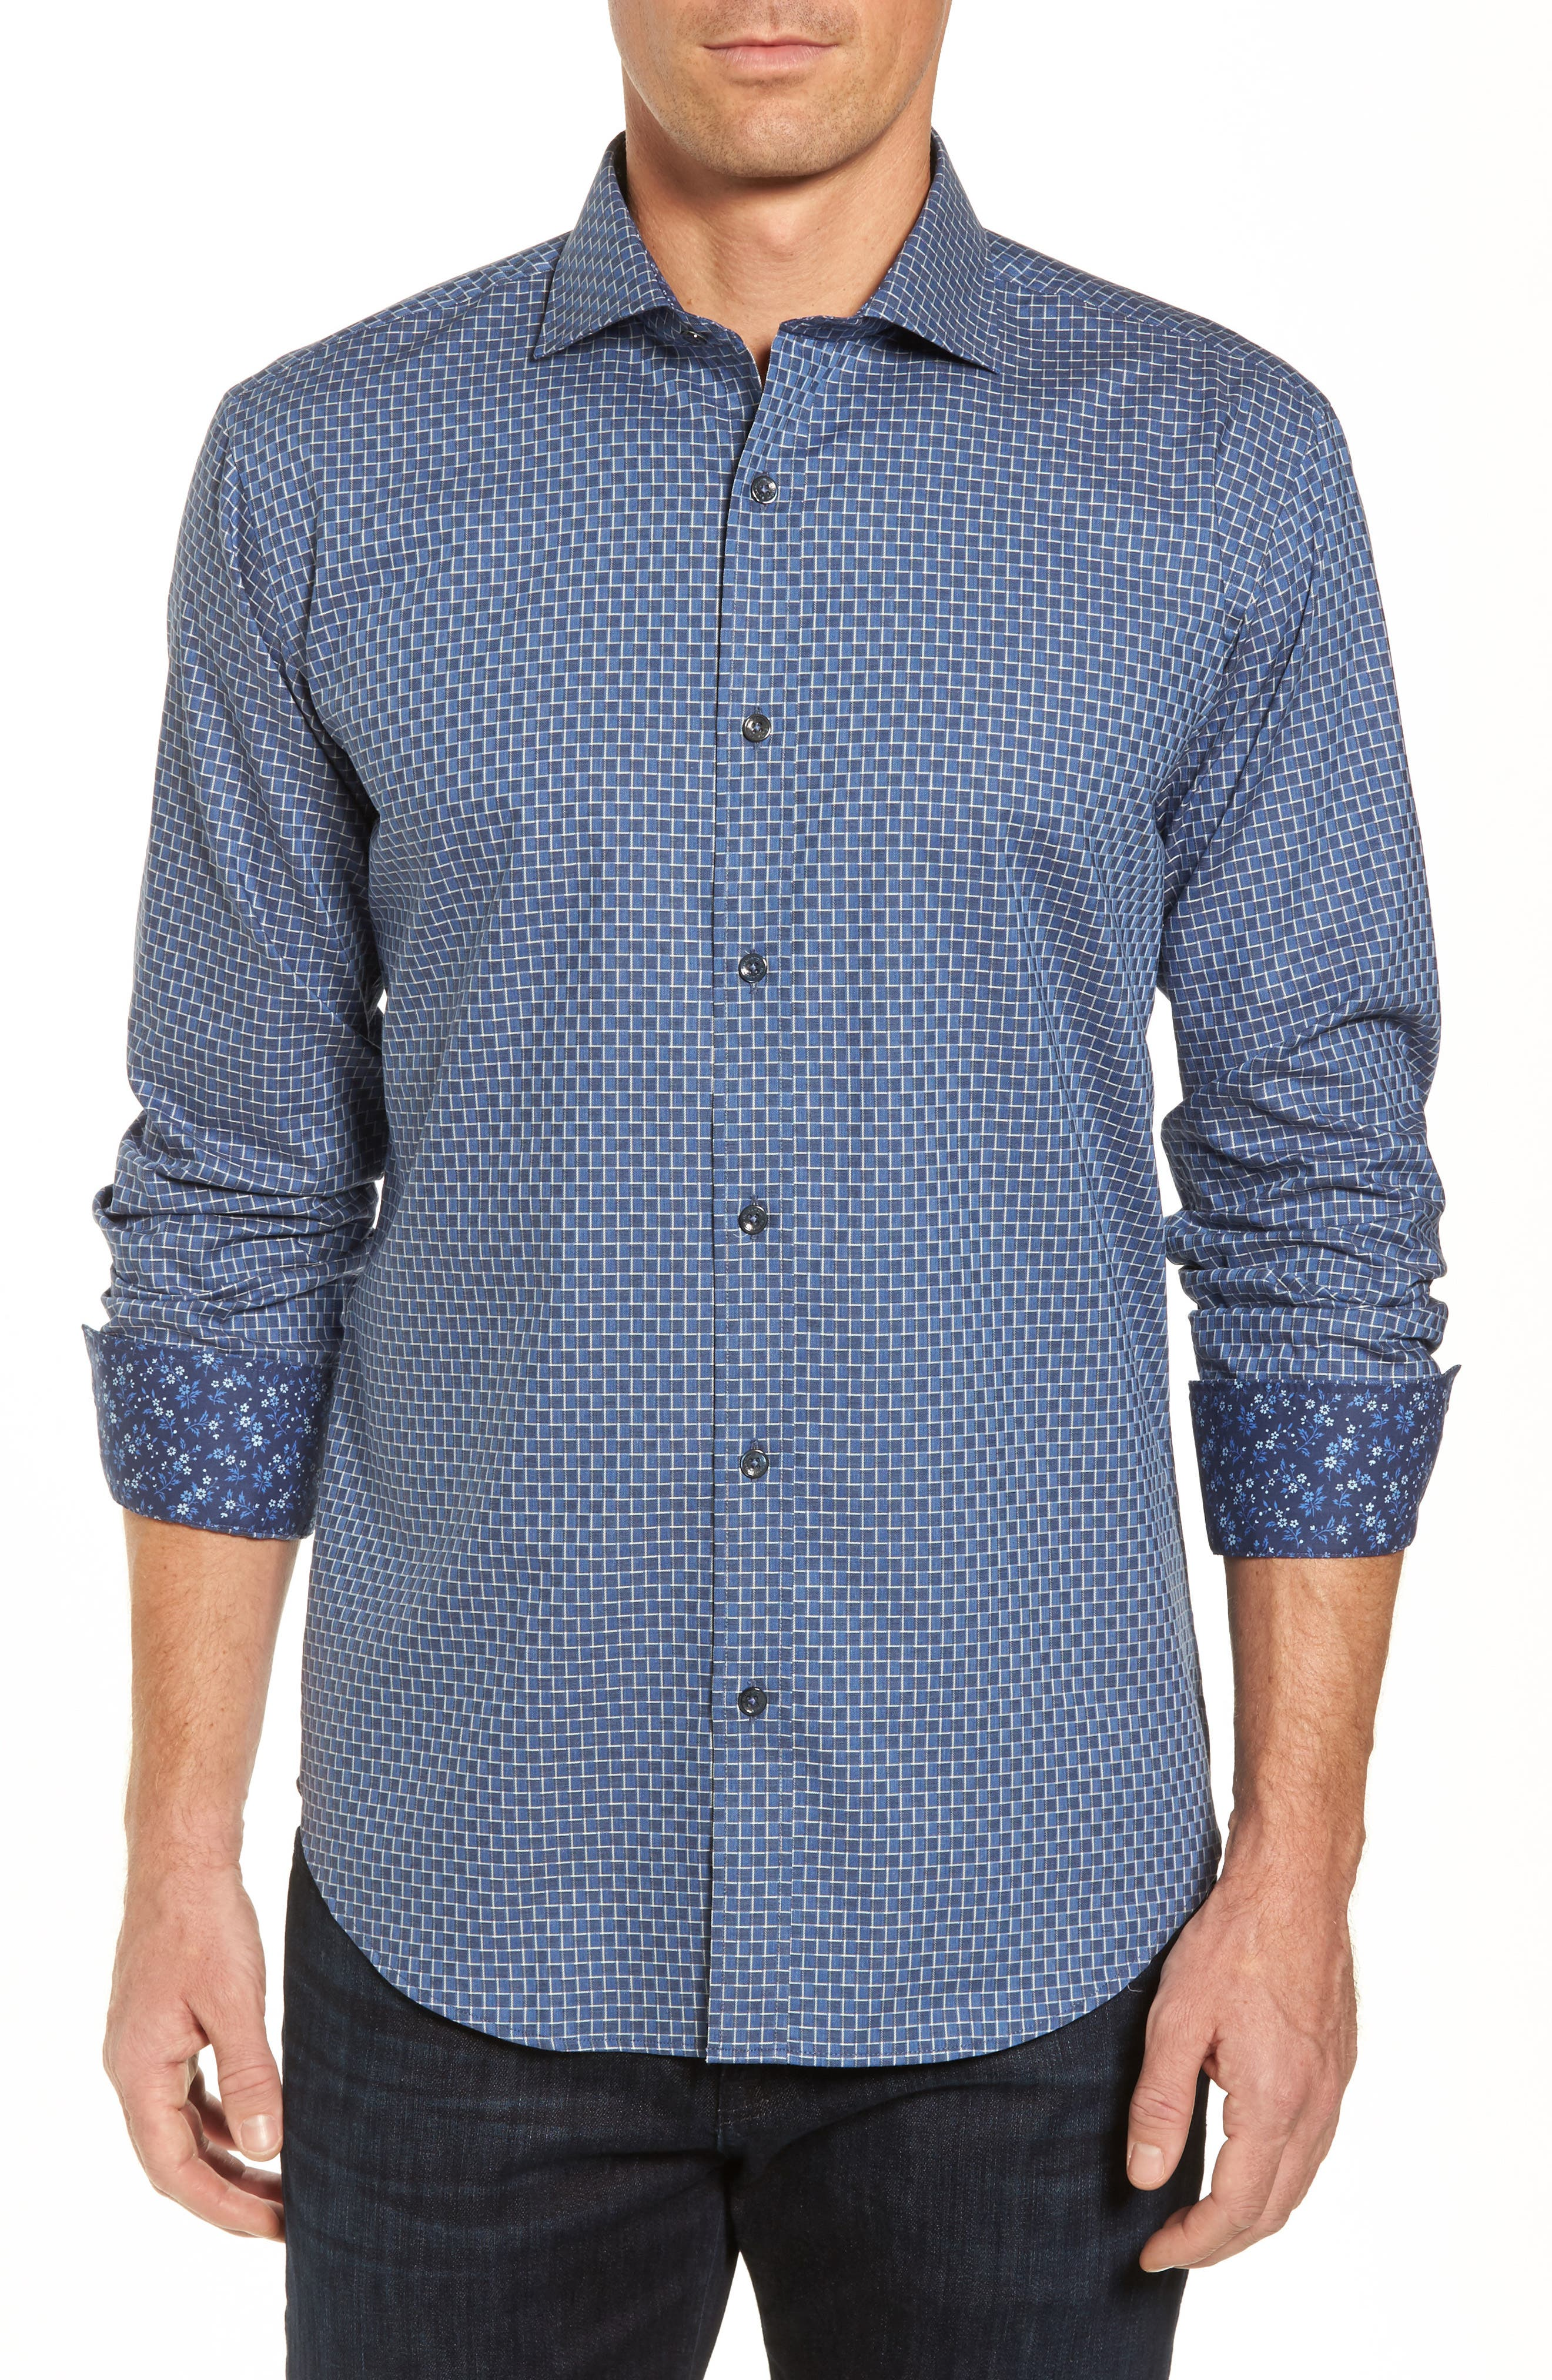 Main Image - Bugatchi Shaped Fit Jacquard Sport Shirt